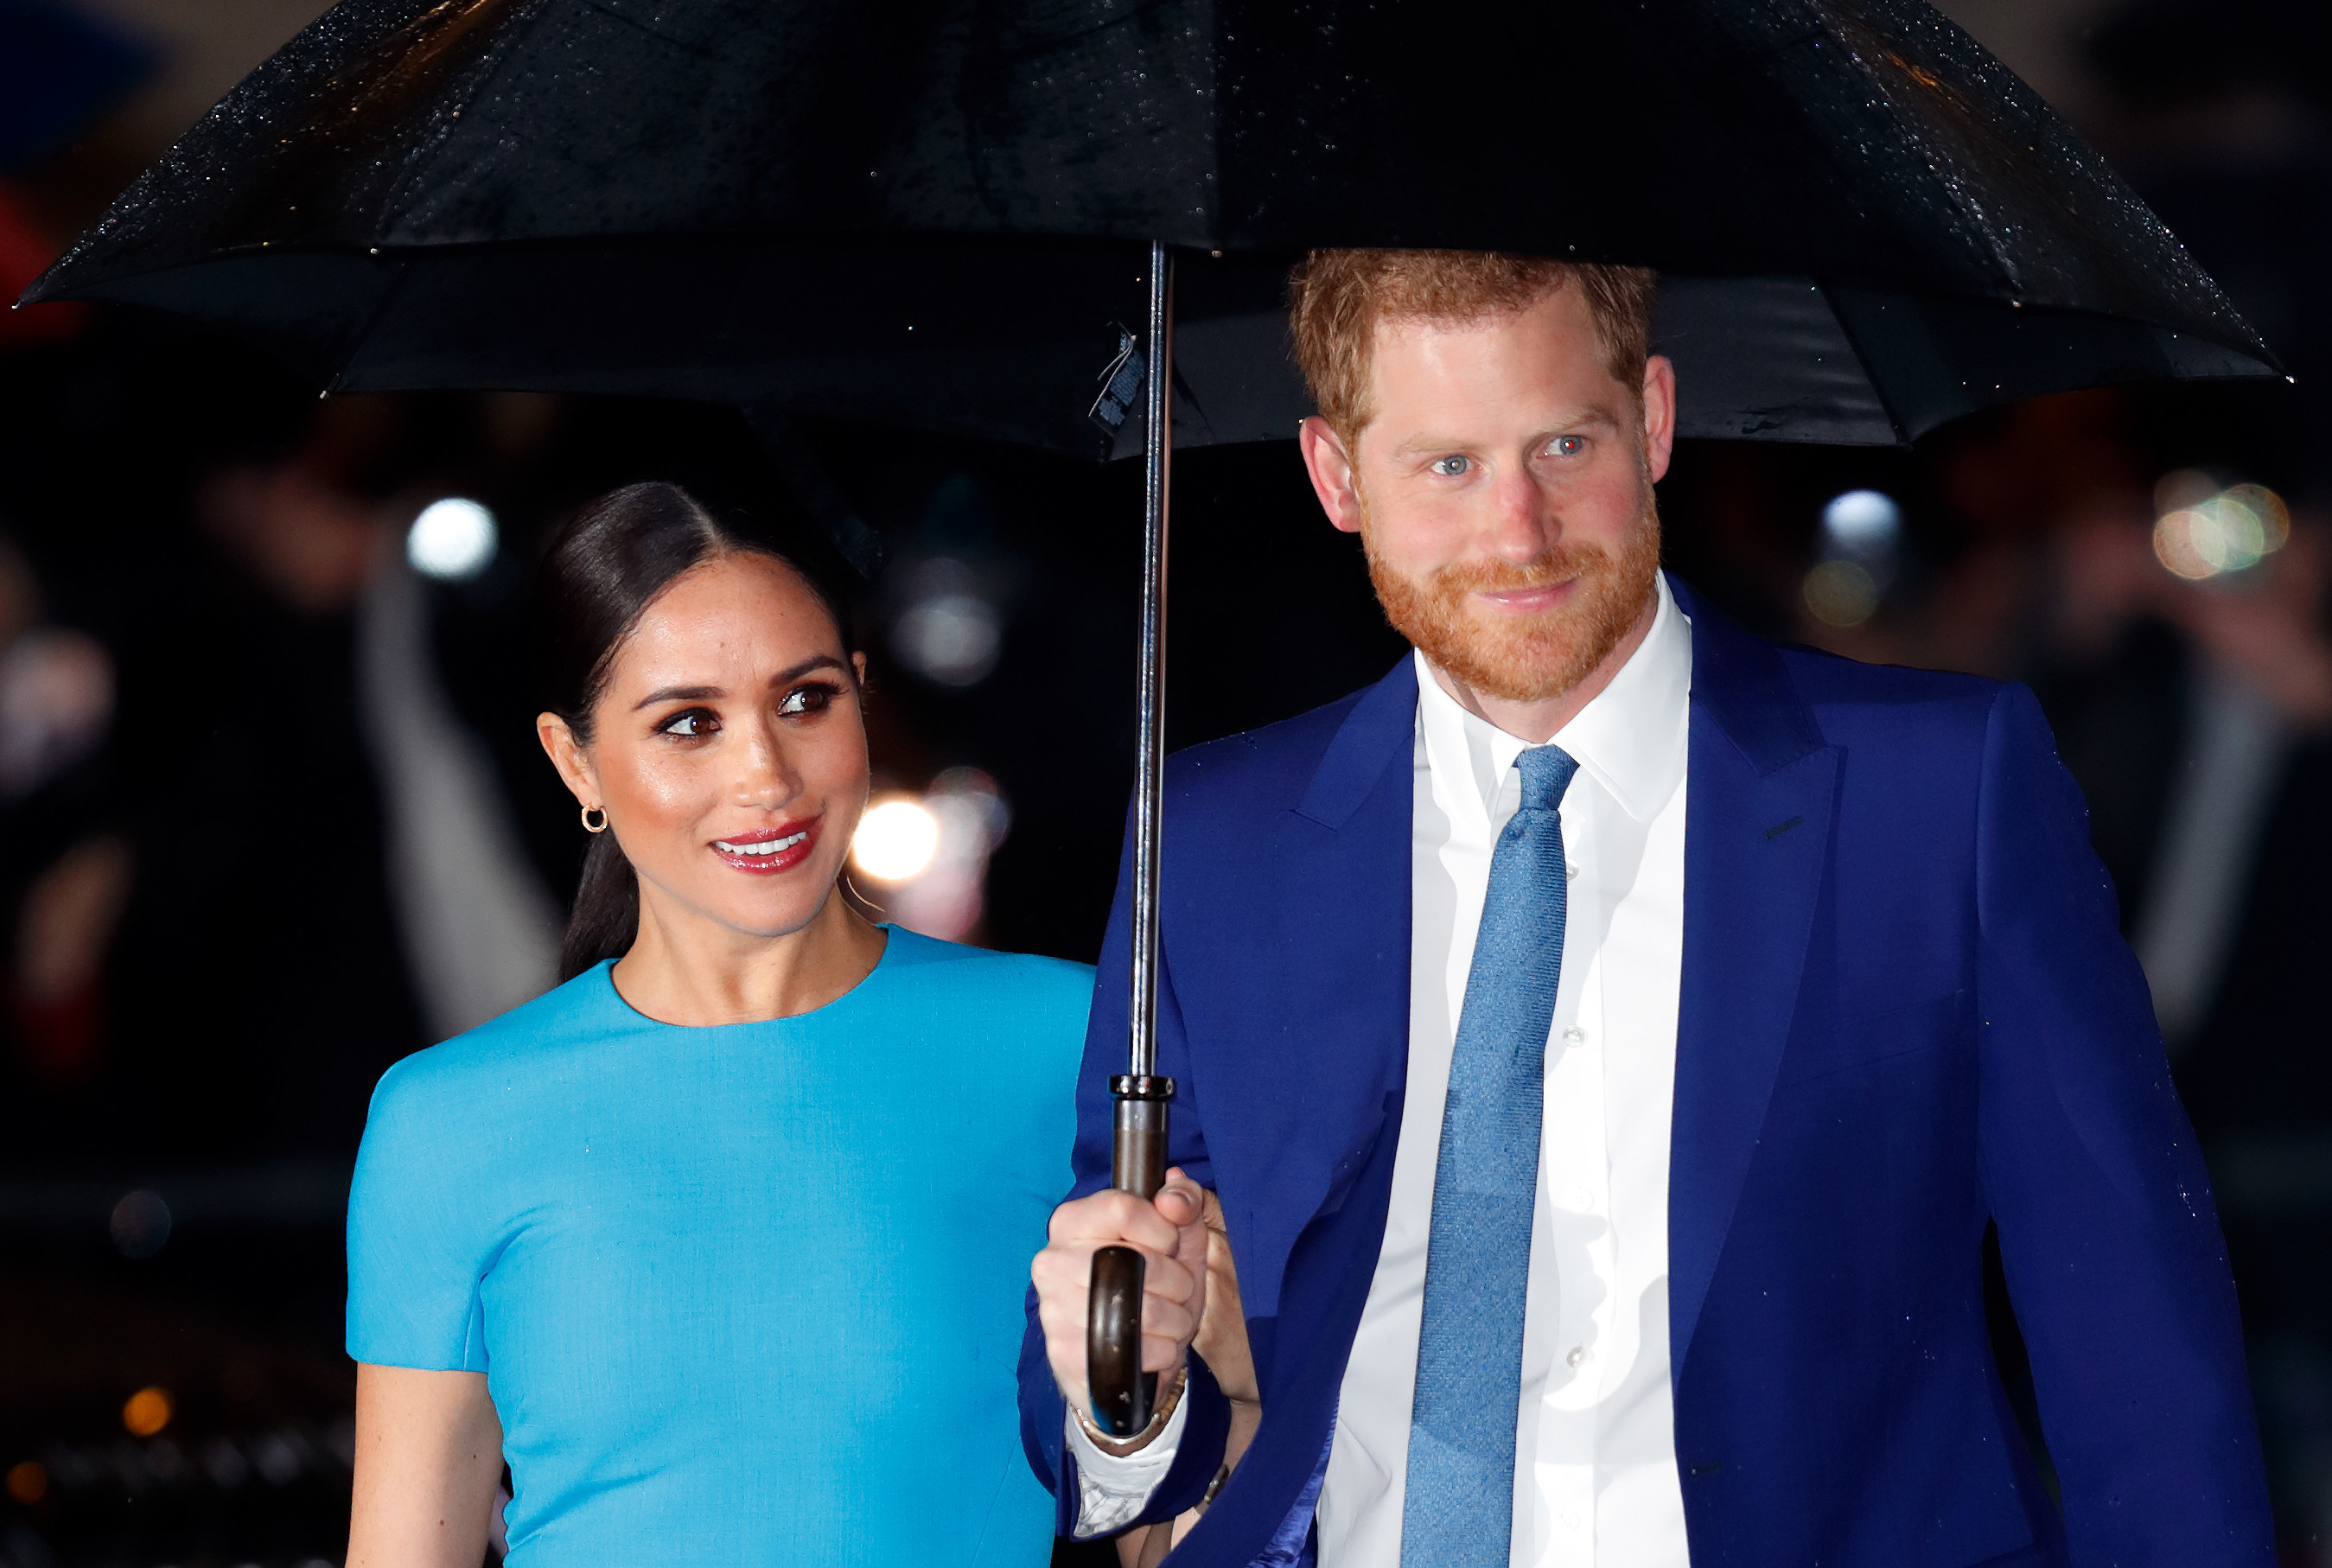 Meghan and Harry stand under and umbrella on the way to an event